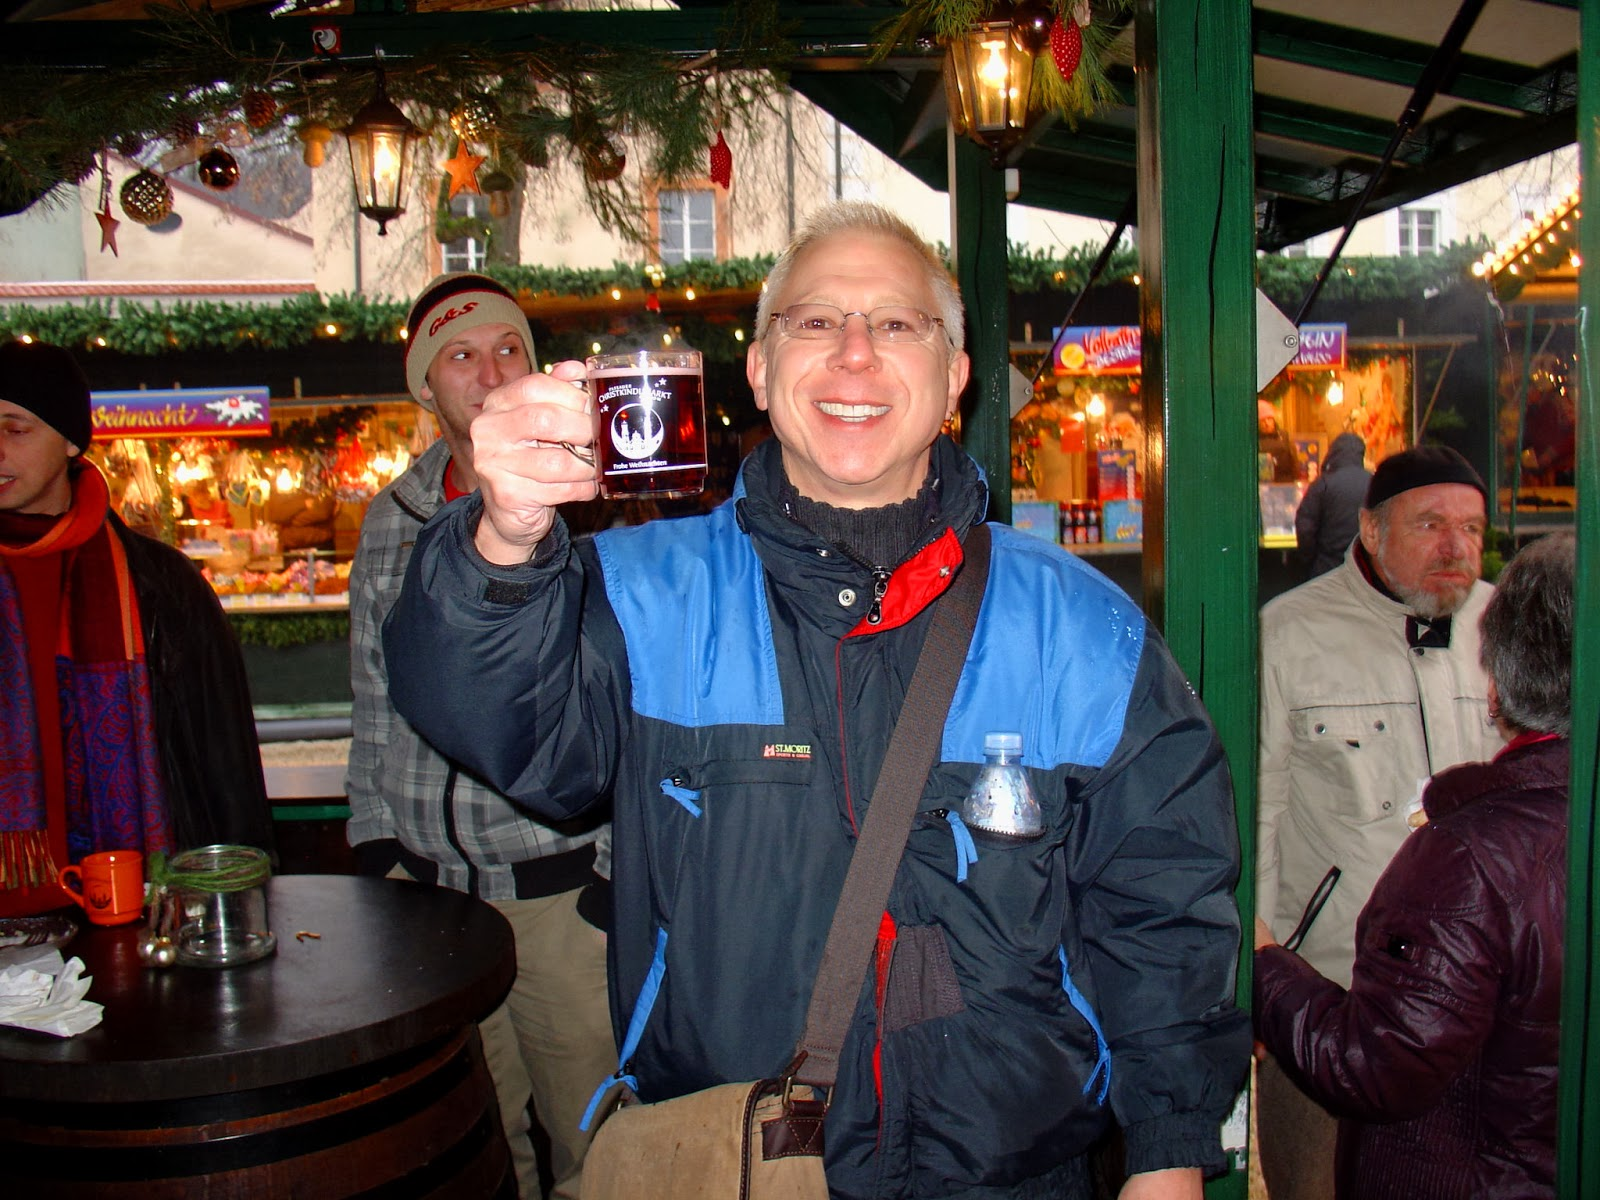 And finally, my first glass of glühwein in Germany.